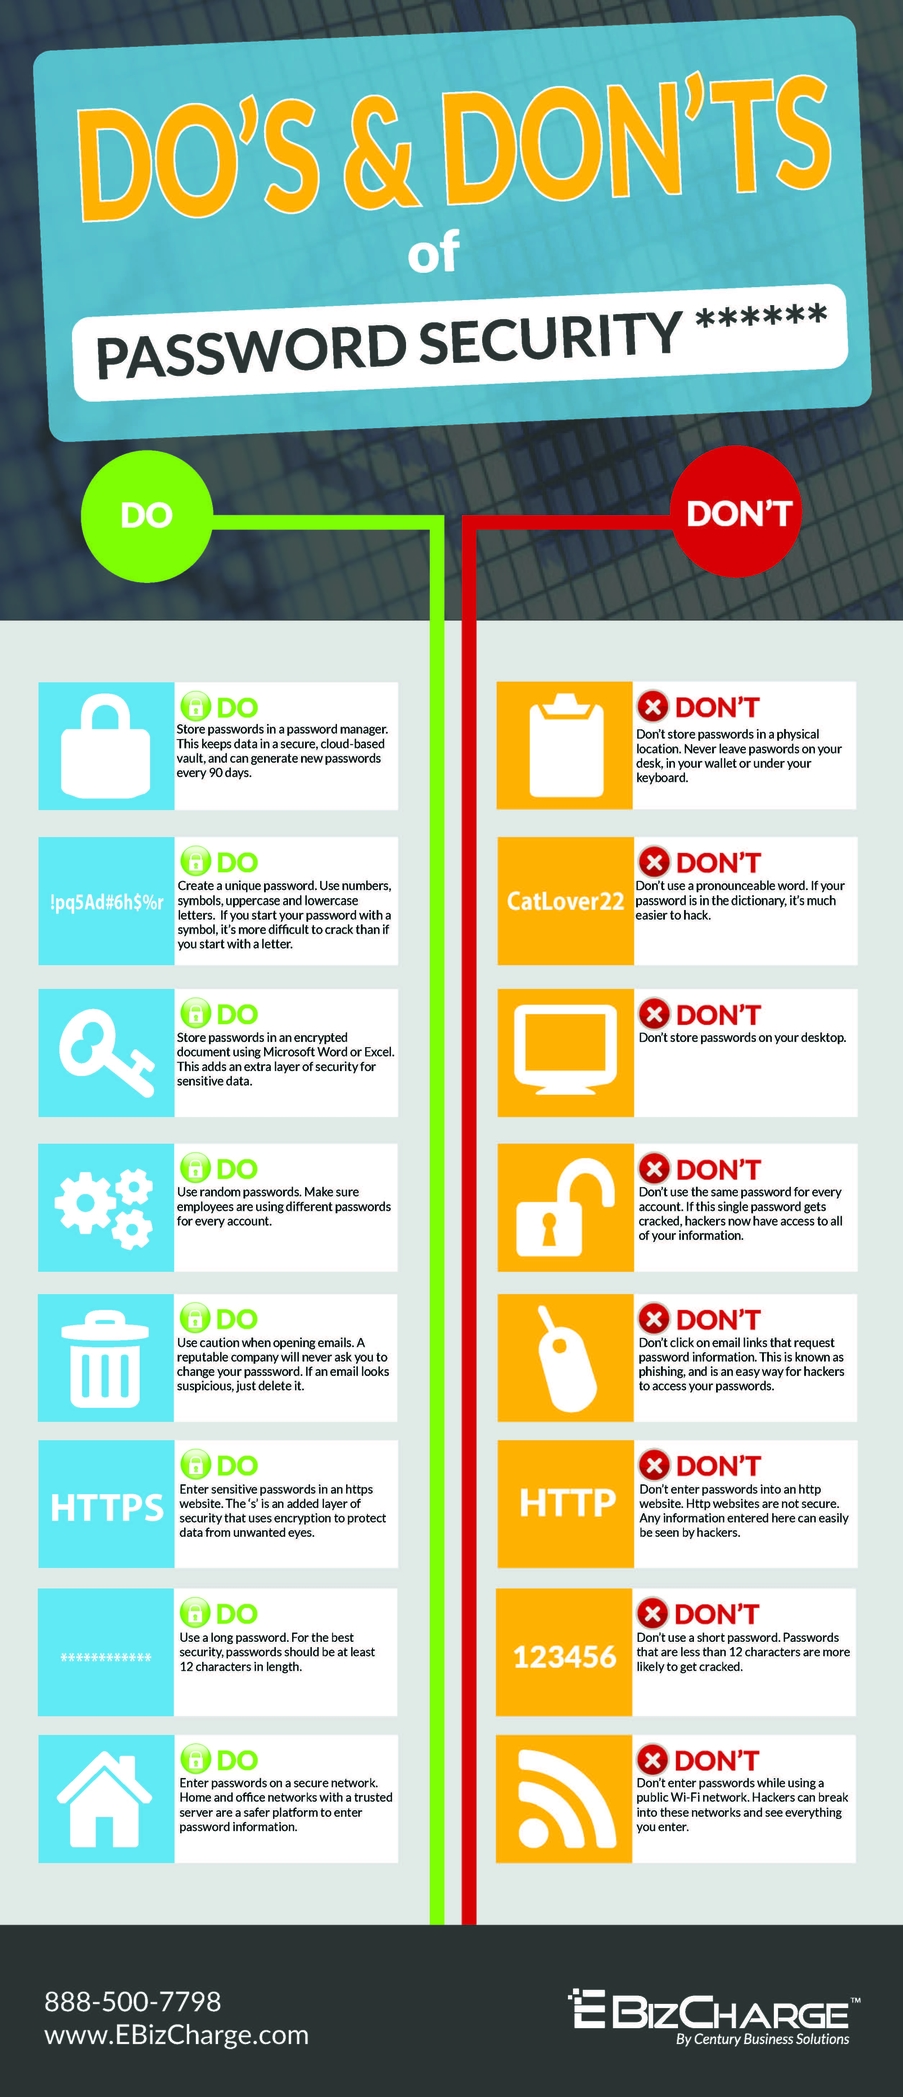 Century business solutions do's and don'ts of password security -